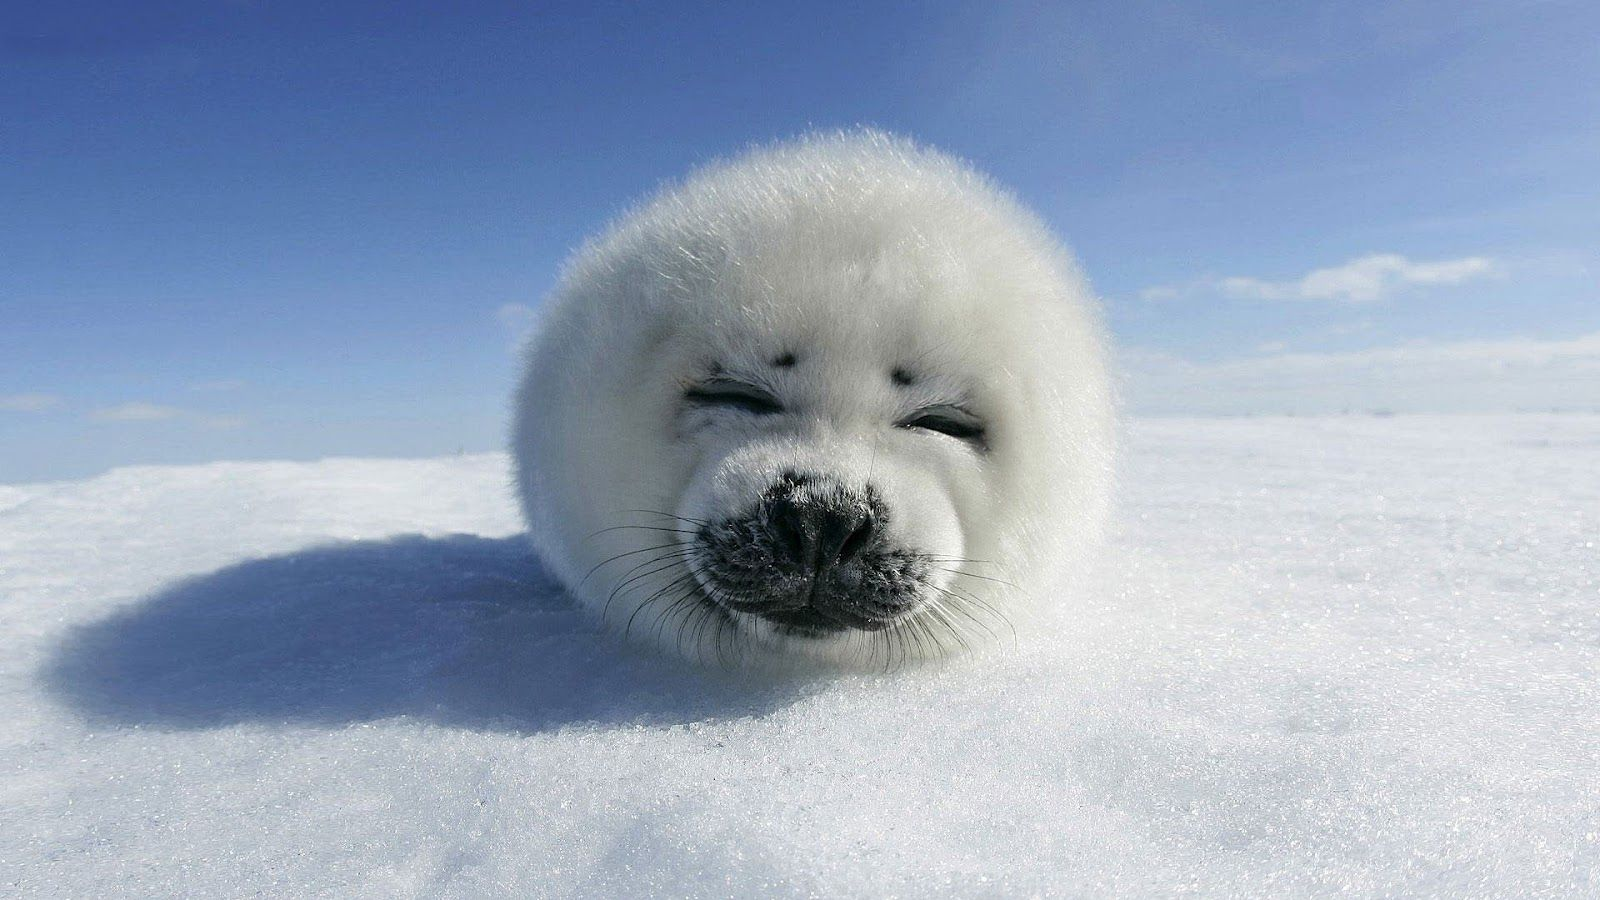 Baby Seal Resting On The Snow Cute Seals Cute Animals Cute Baby Animals